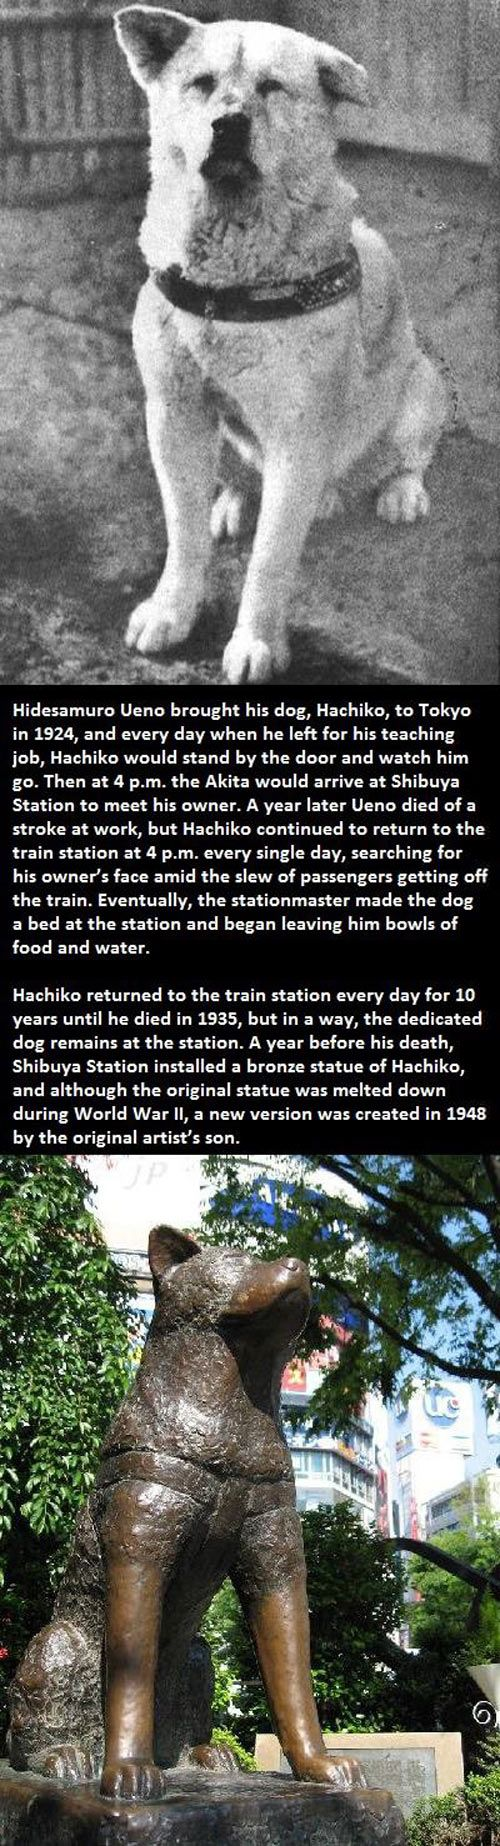 Most loyal dog in the world… Netflix had the movie based on him once, called Hatchi.  I watched it three times.  Ran though a box or two of tissue.